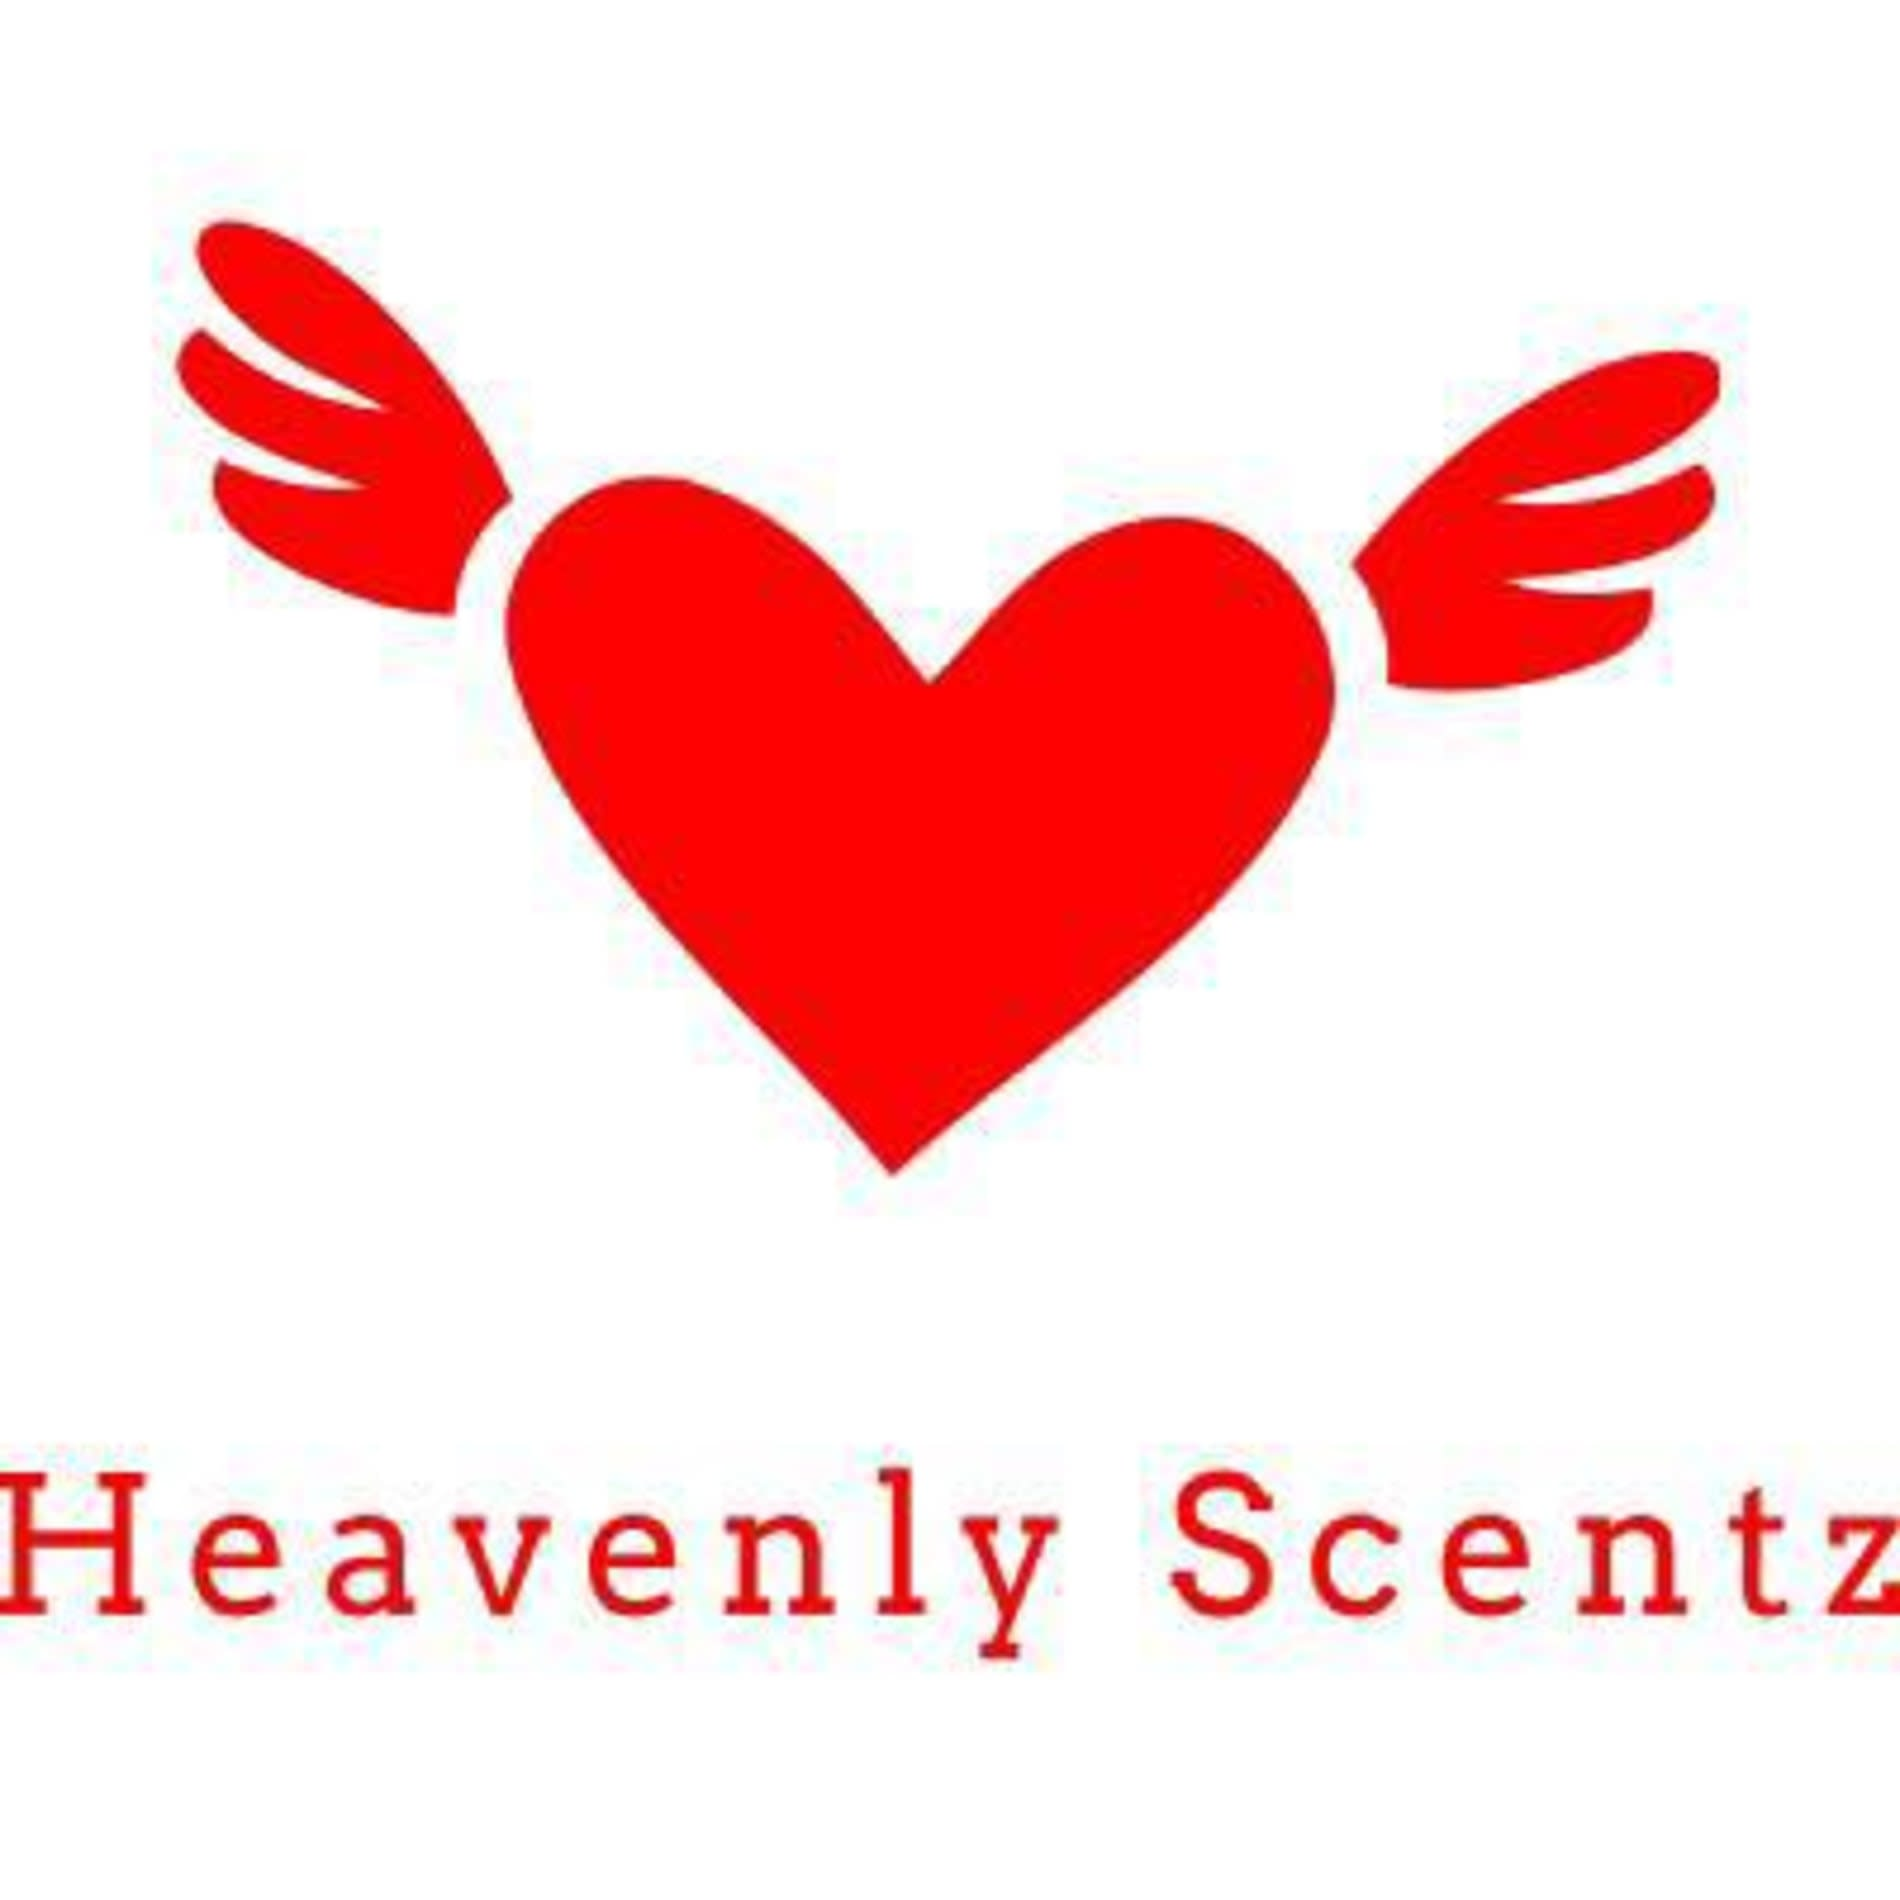 Heavenly Scentz